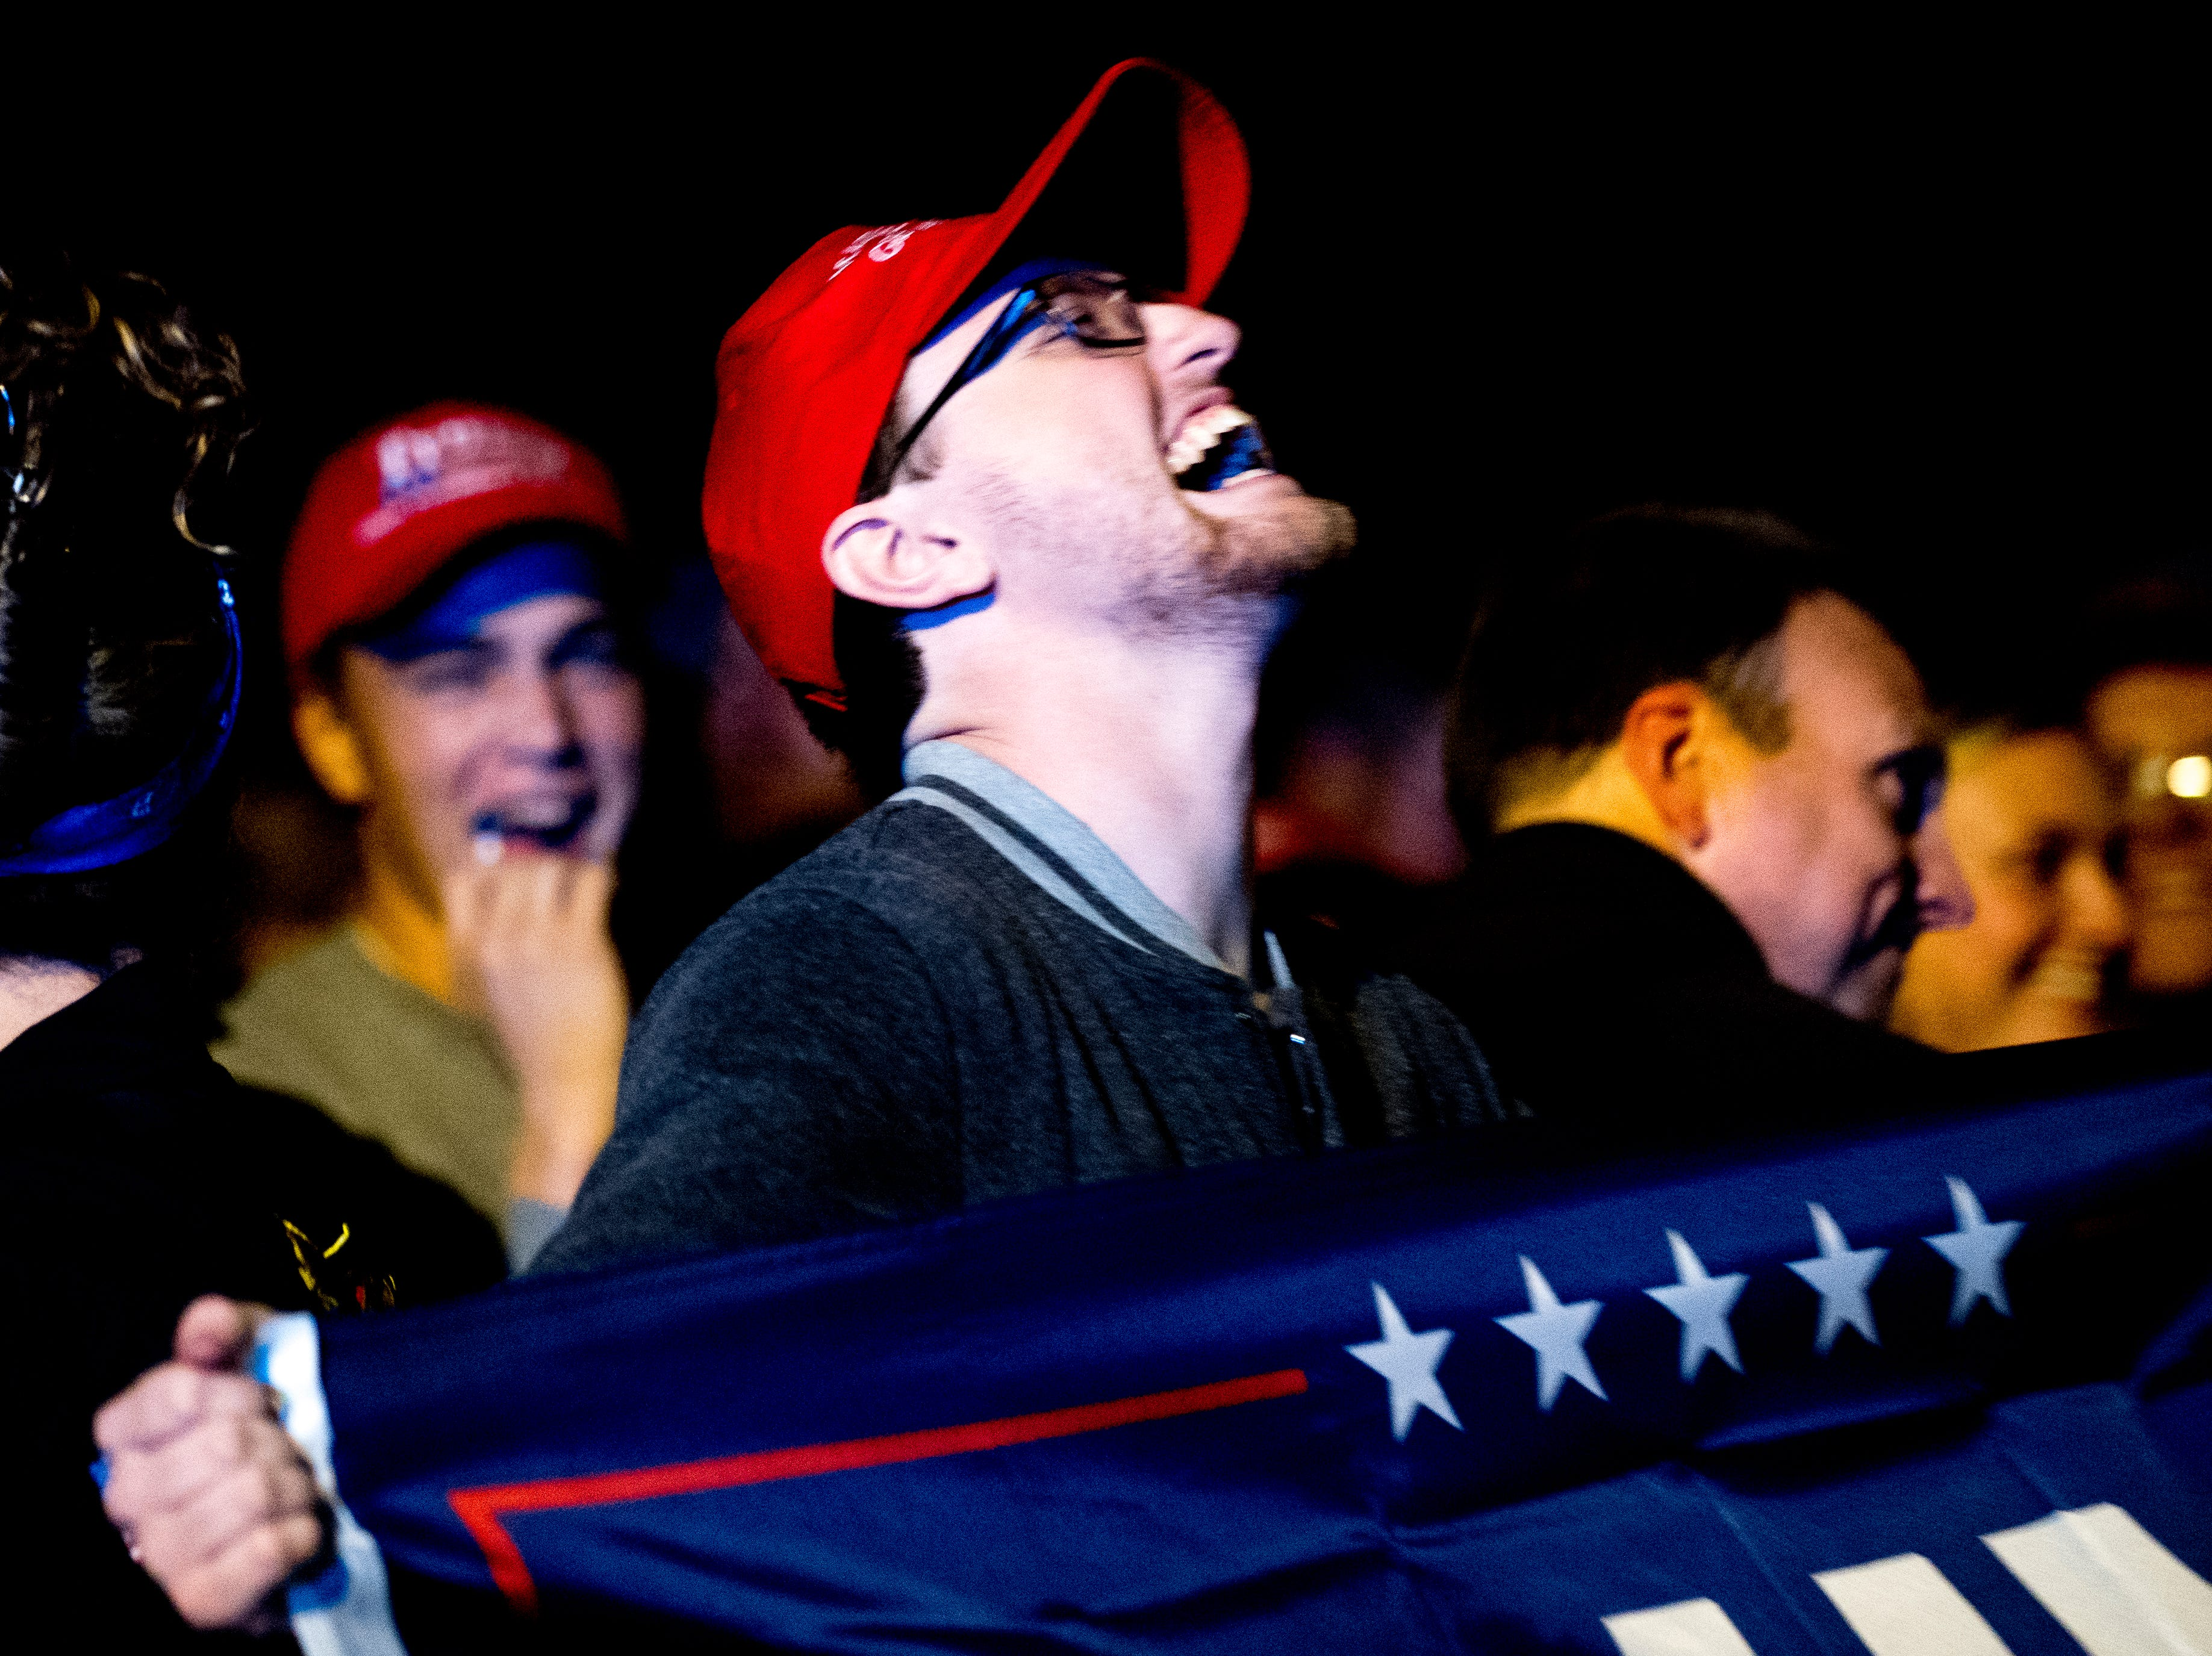 """A Trump supporter banters with protestors during President Donald J. Trump's """"Make America Great Again"""" Rally at McKenzie Arena in Chattanooga, Tennessee on Sunday, November 4, 2018."""